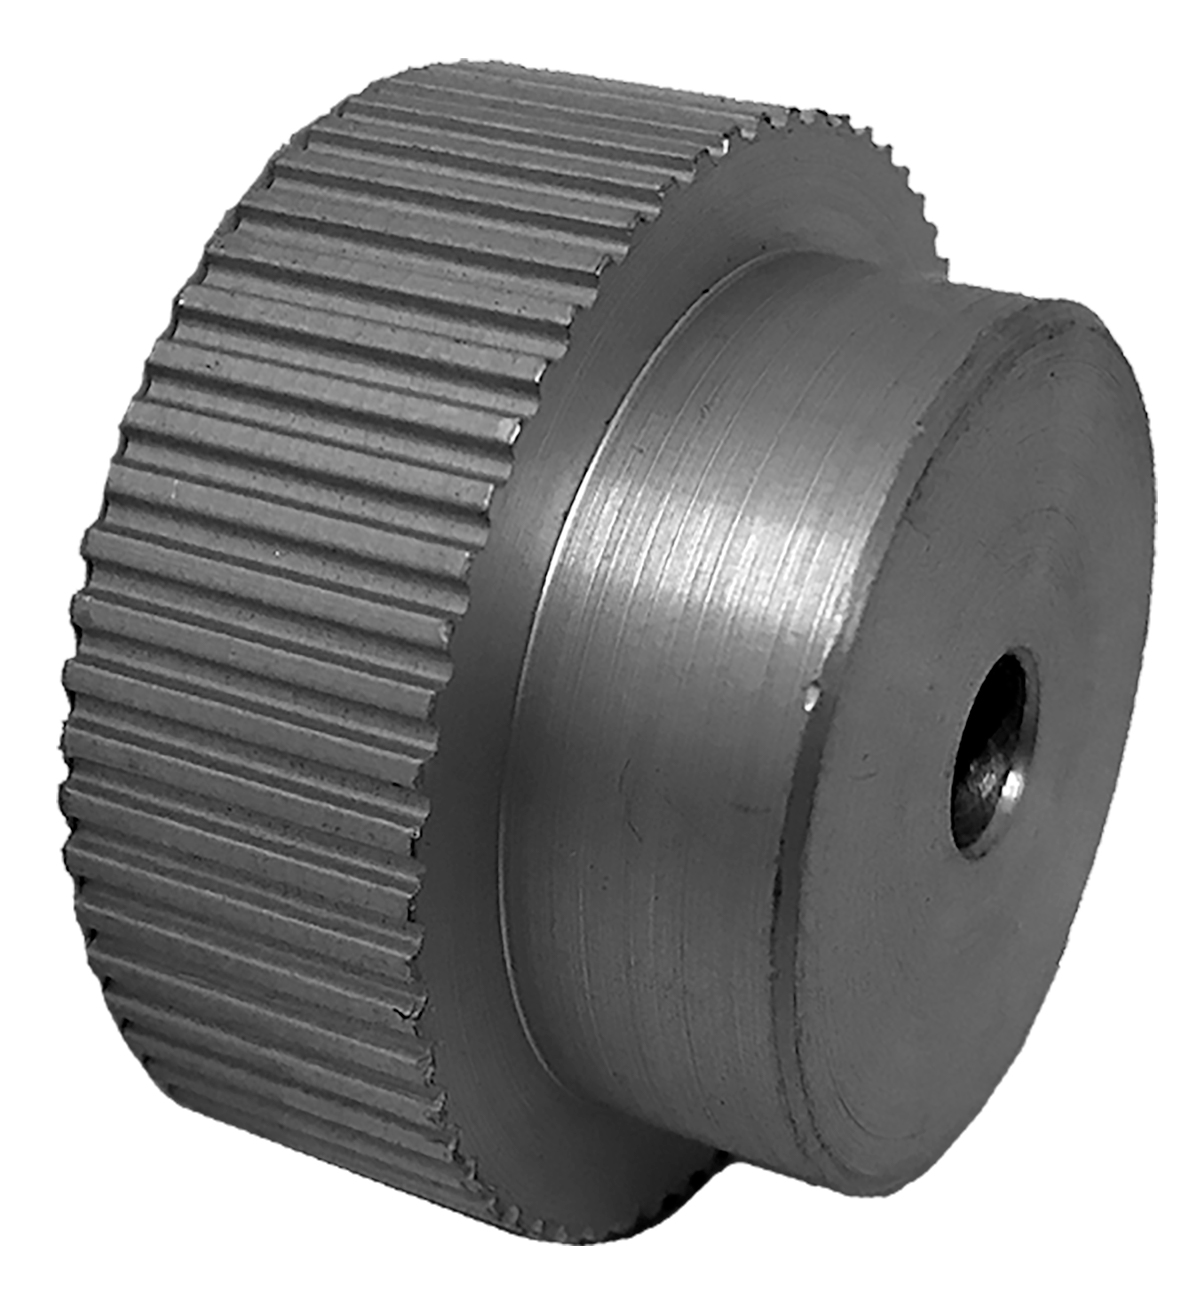 60MP037-6A3 - Aluminum Imperial Pitch Pulleys